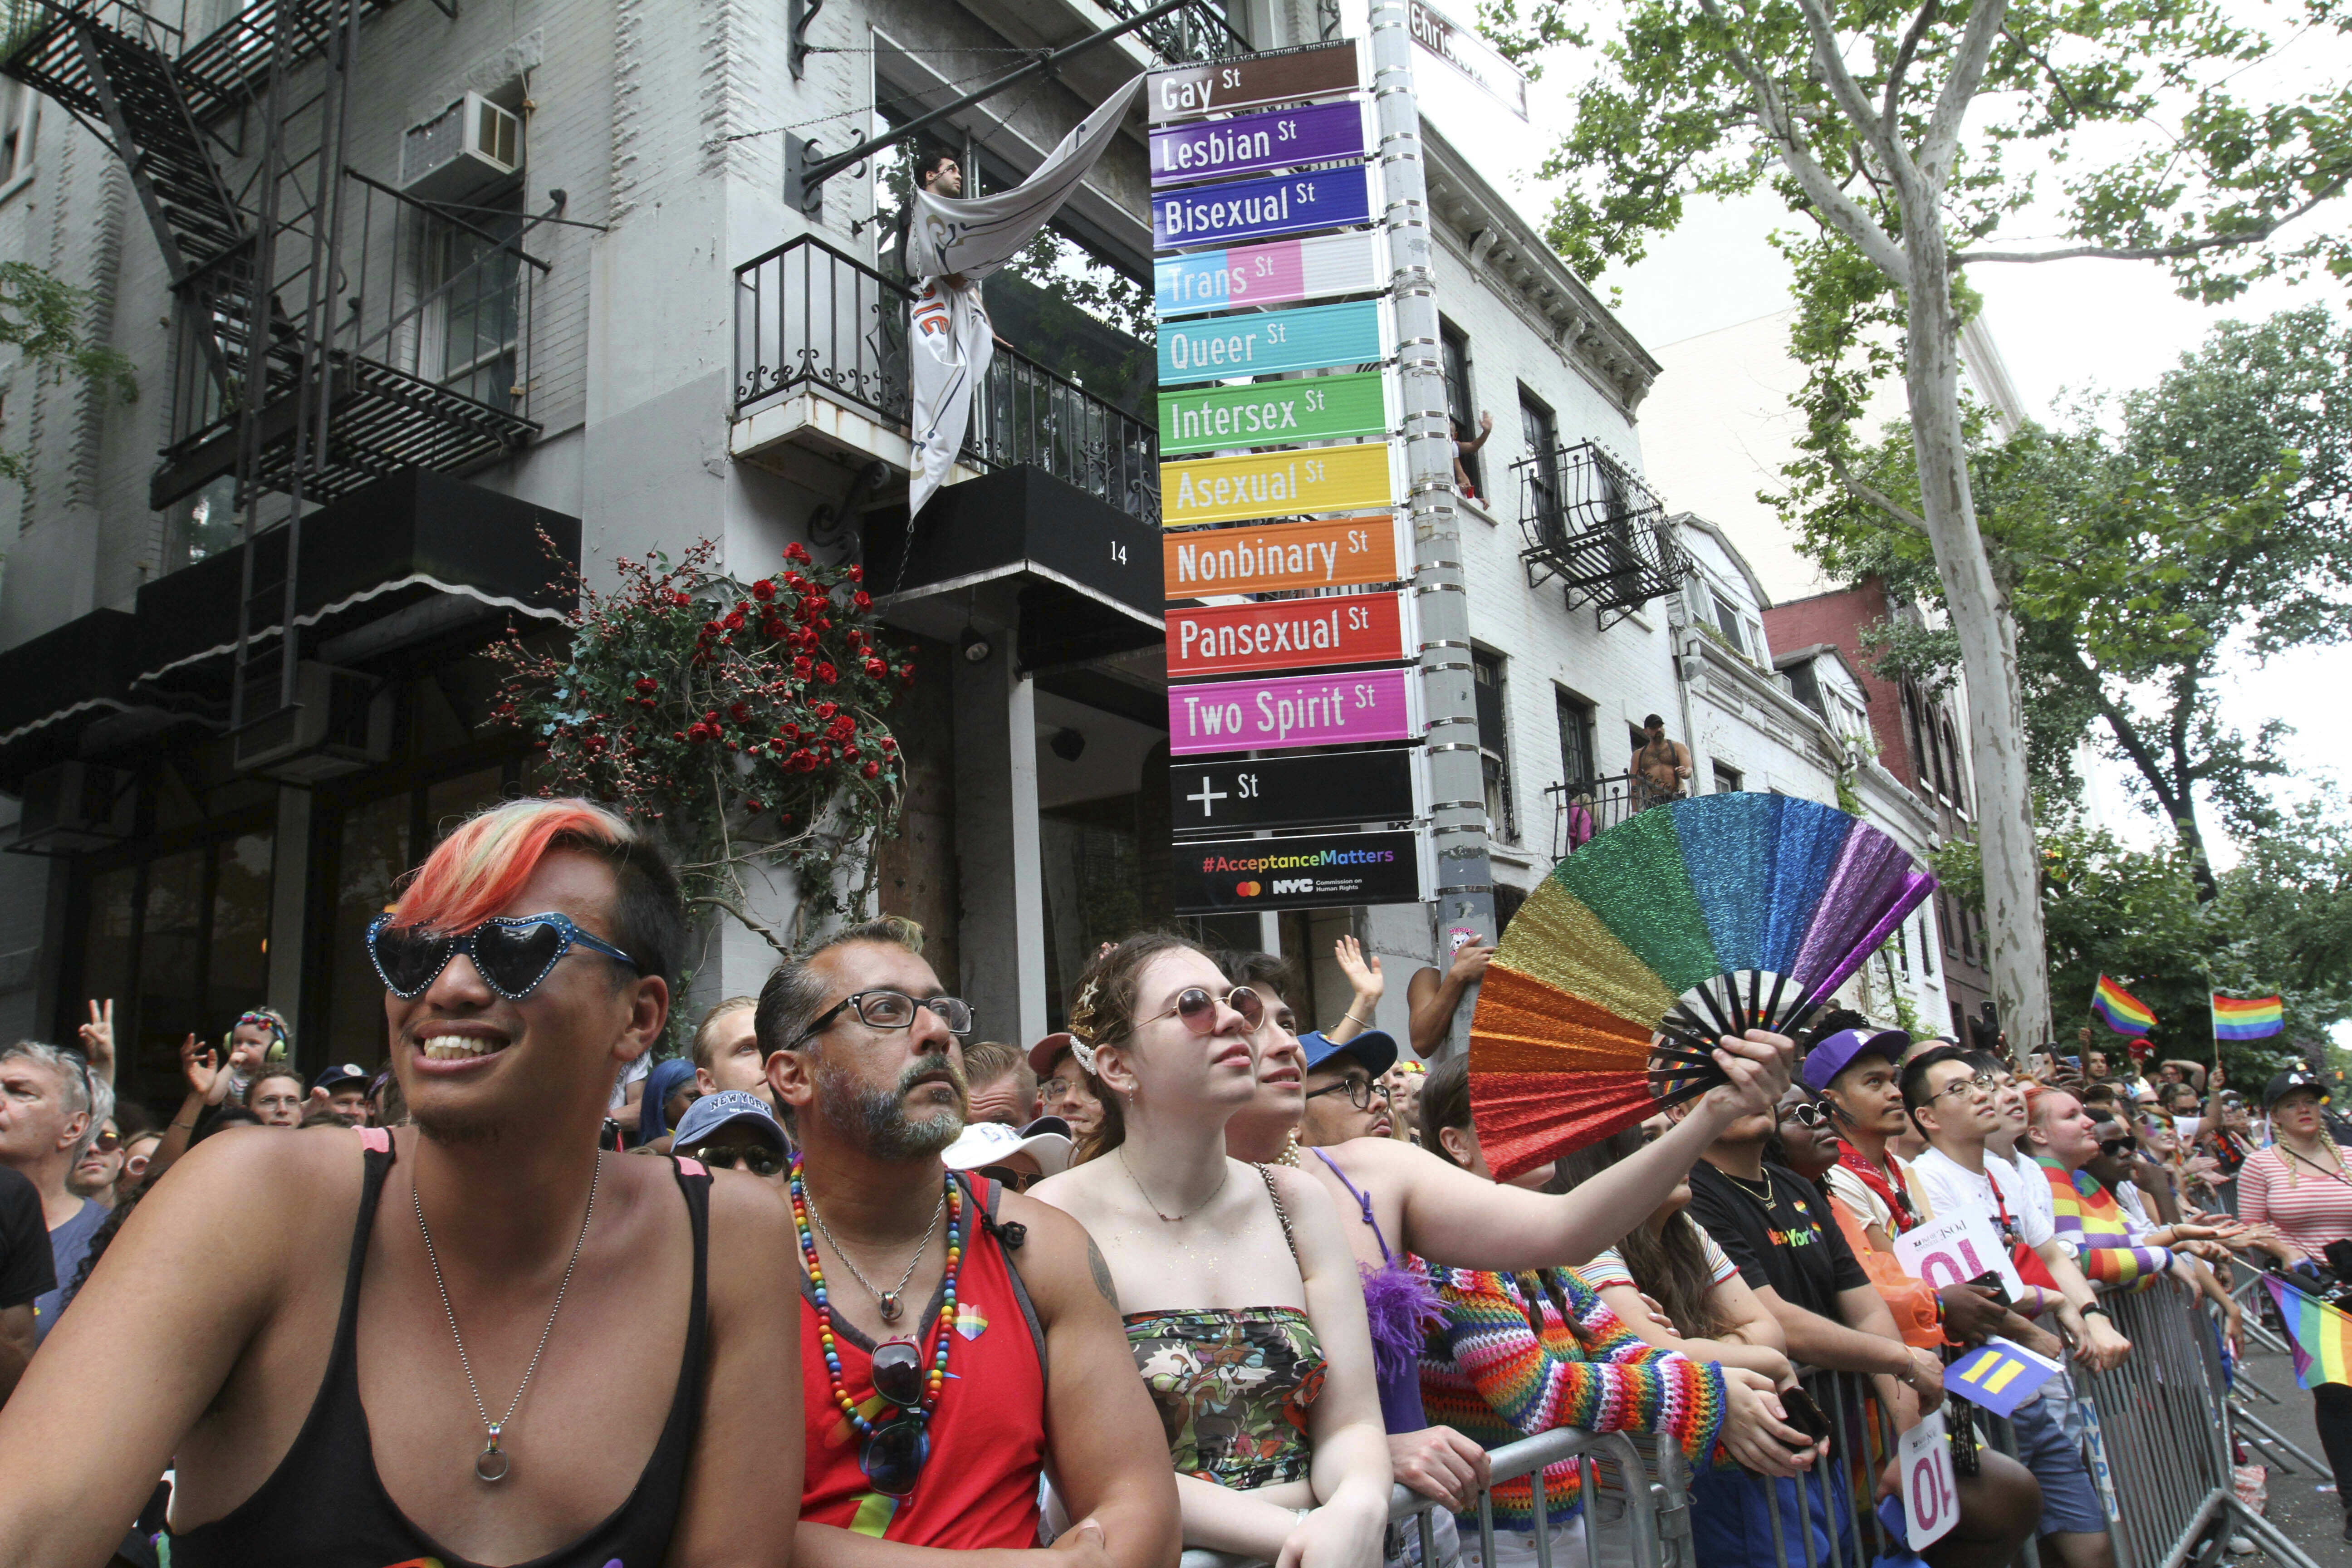 Epic! New Yorks Pride parade lasted over 12 hours